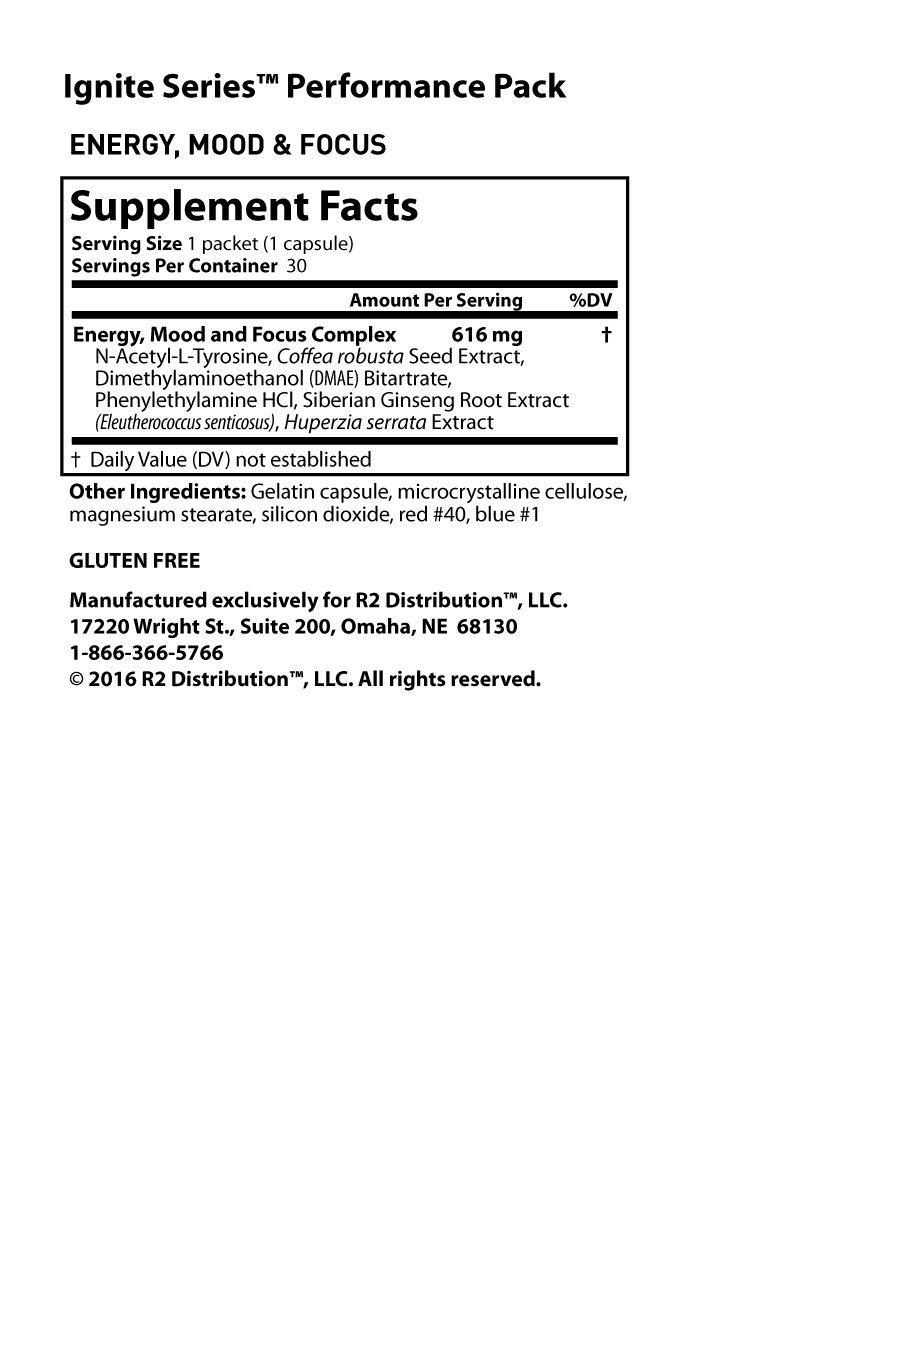 Ignite Performance Packet - Nutrition Facts